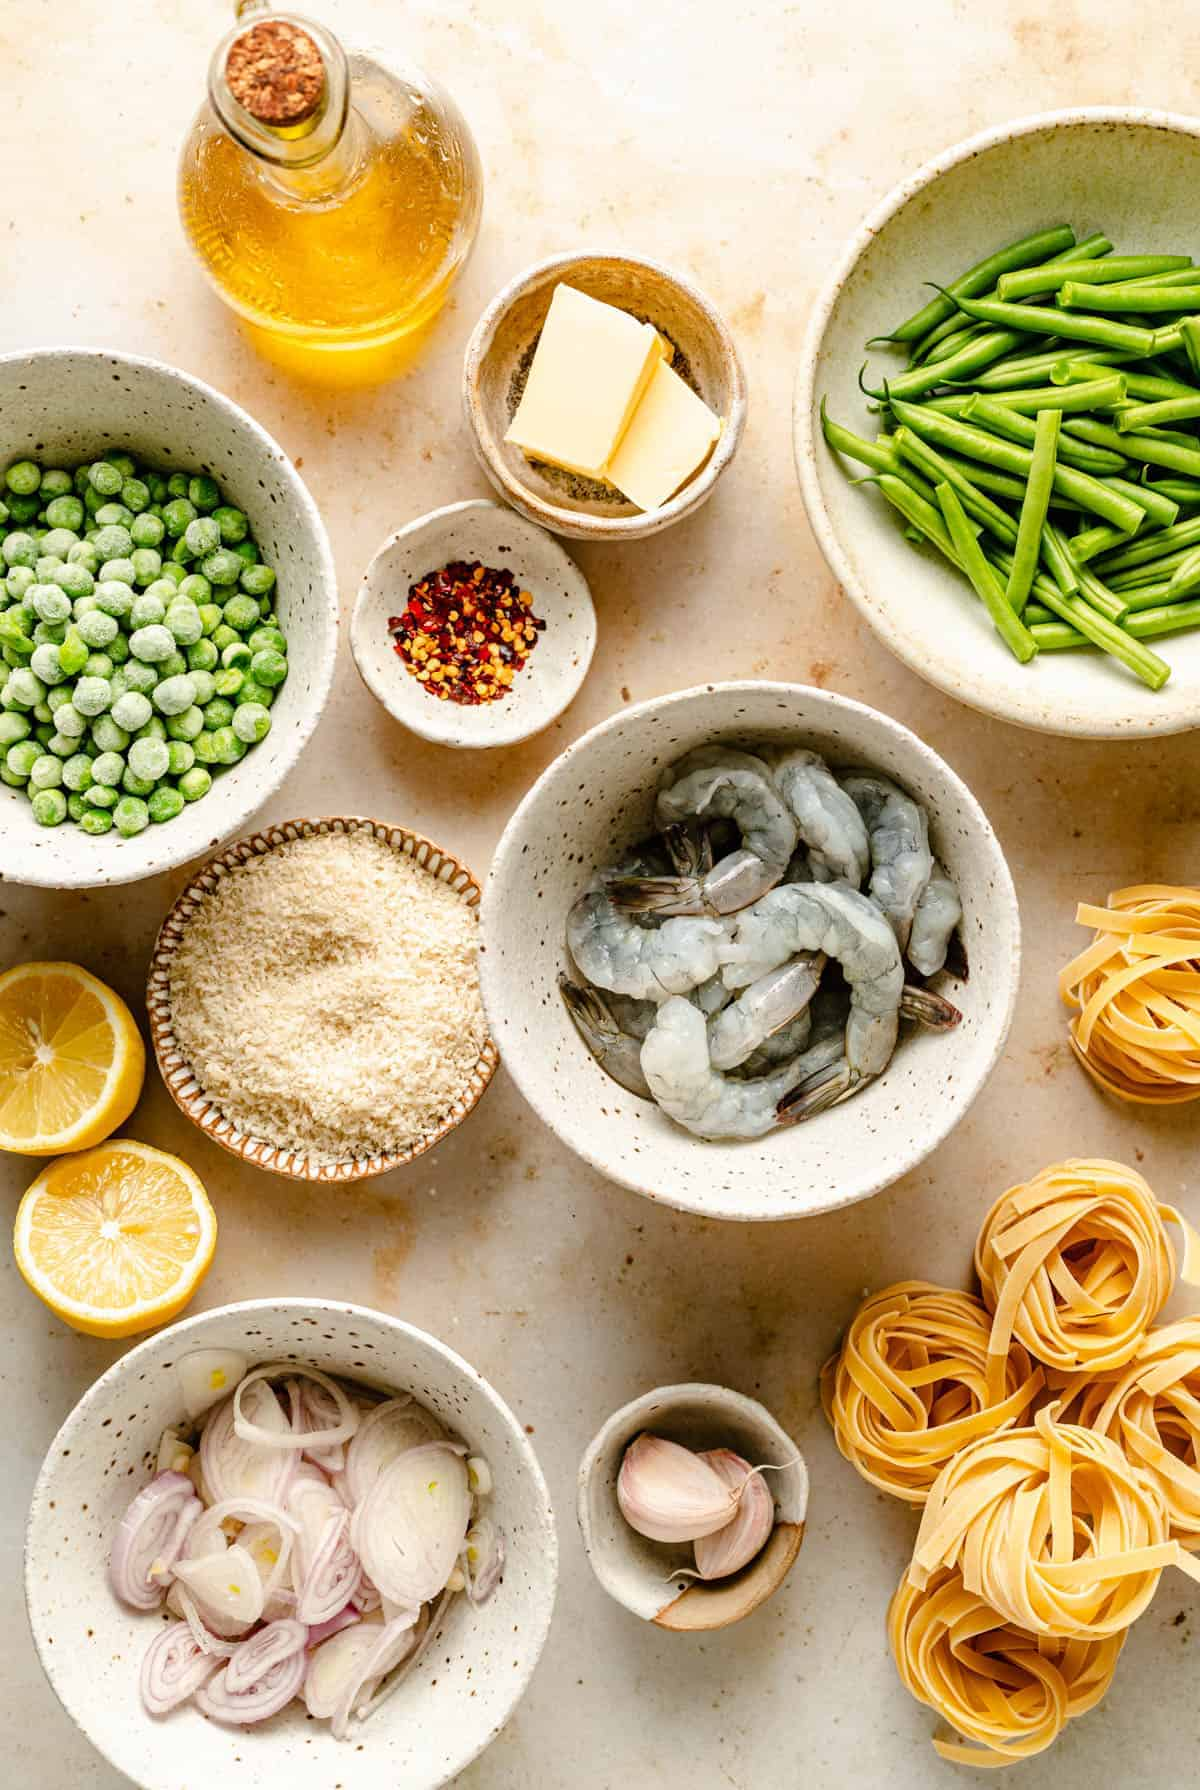 Ingredients used, including shrimp, lemons, peas and beans